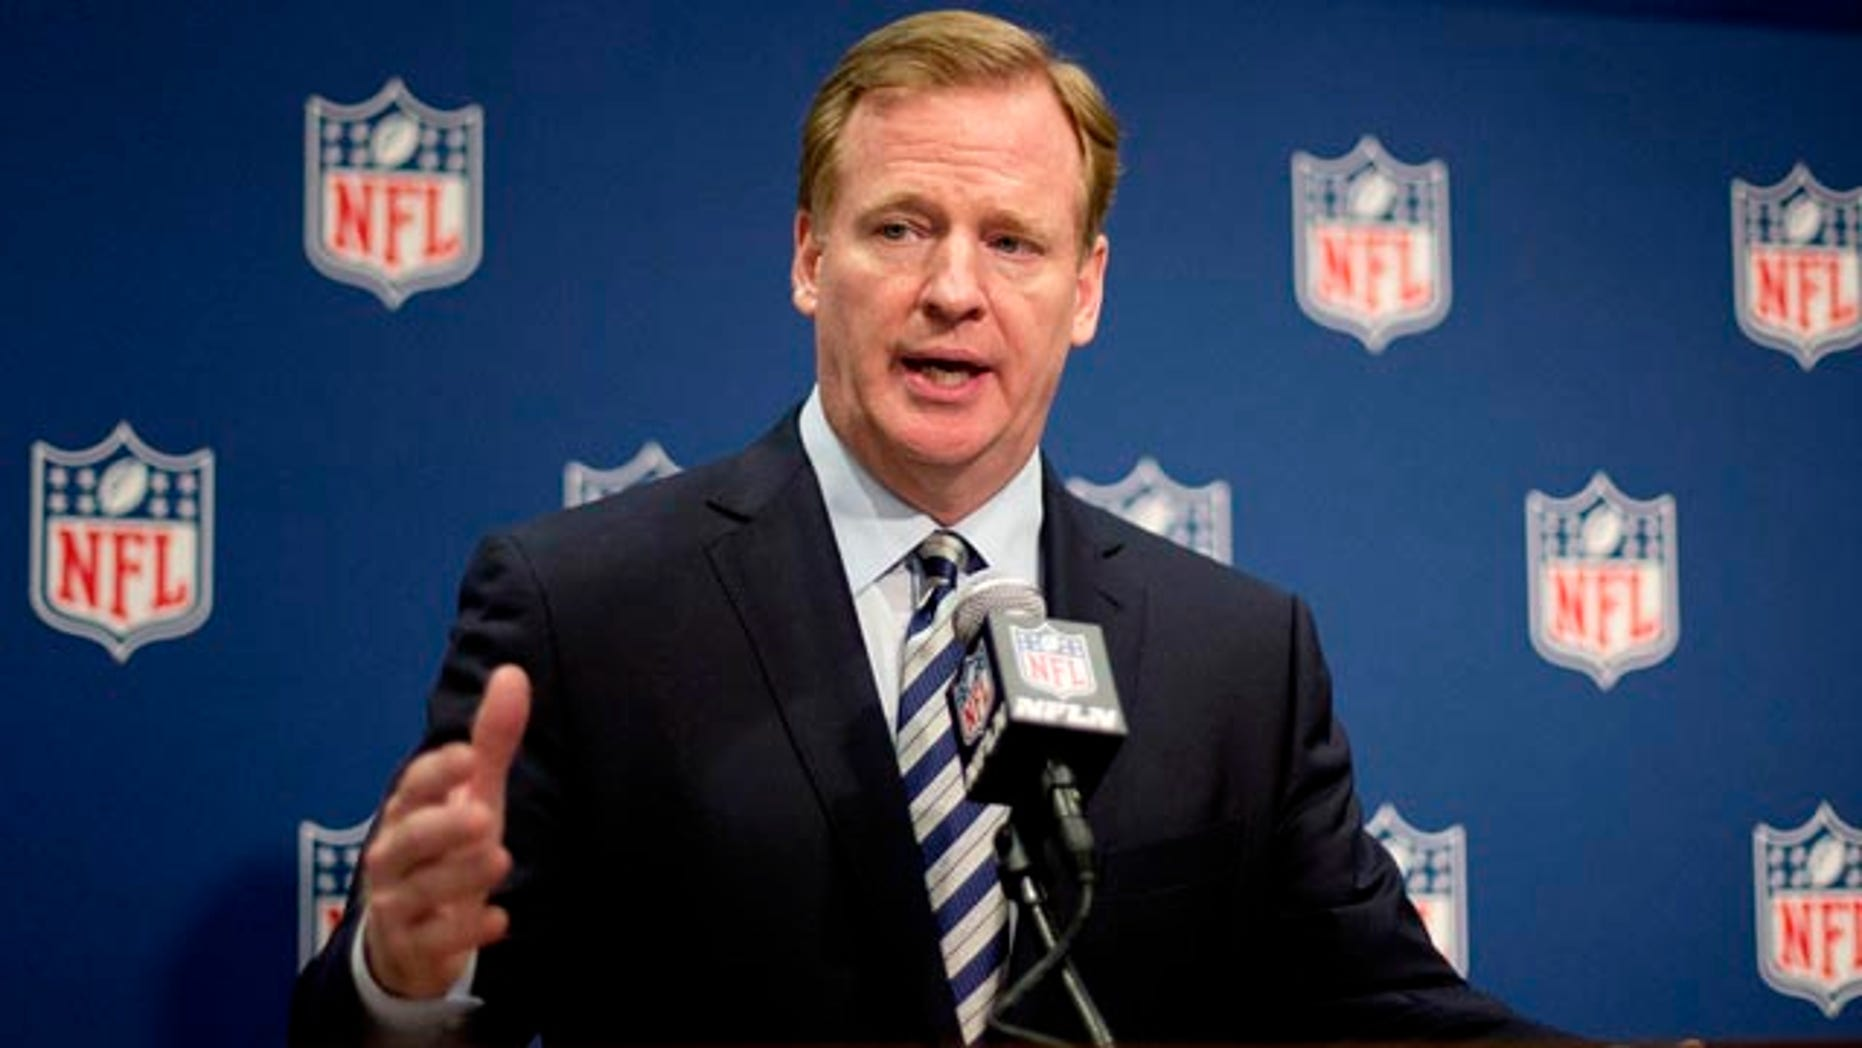 May 20, 2014: NFL Commissioner Roger Goodell speaks at a press conference at the NFL's spring meeting in Atlanta. (AP Photo/David Goldman)